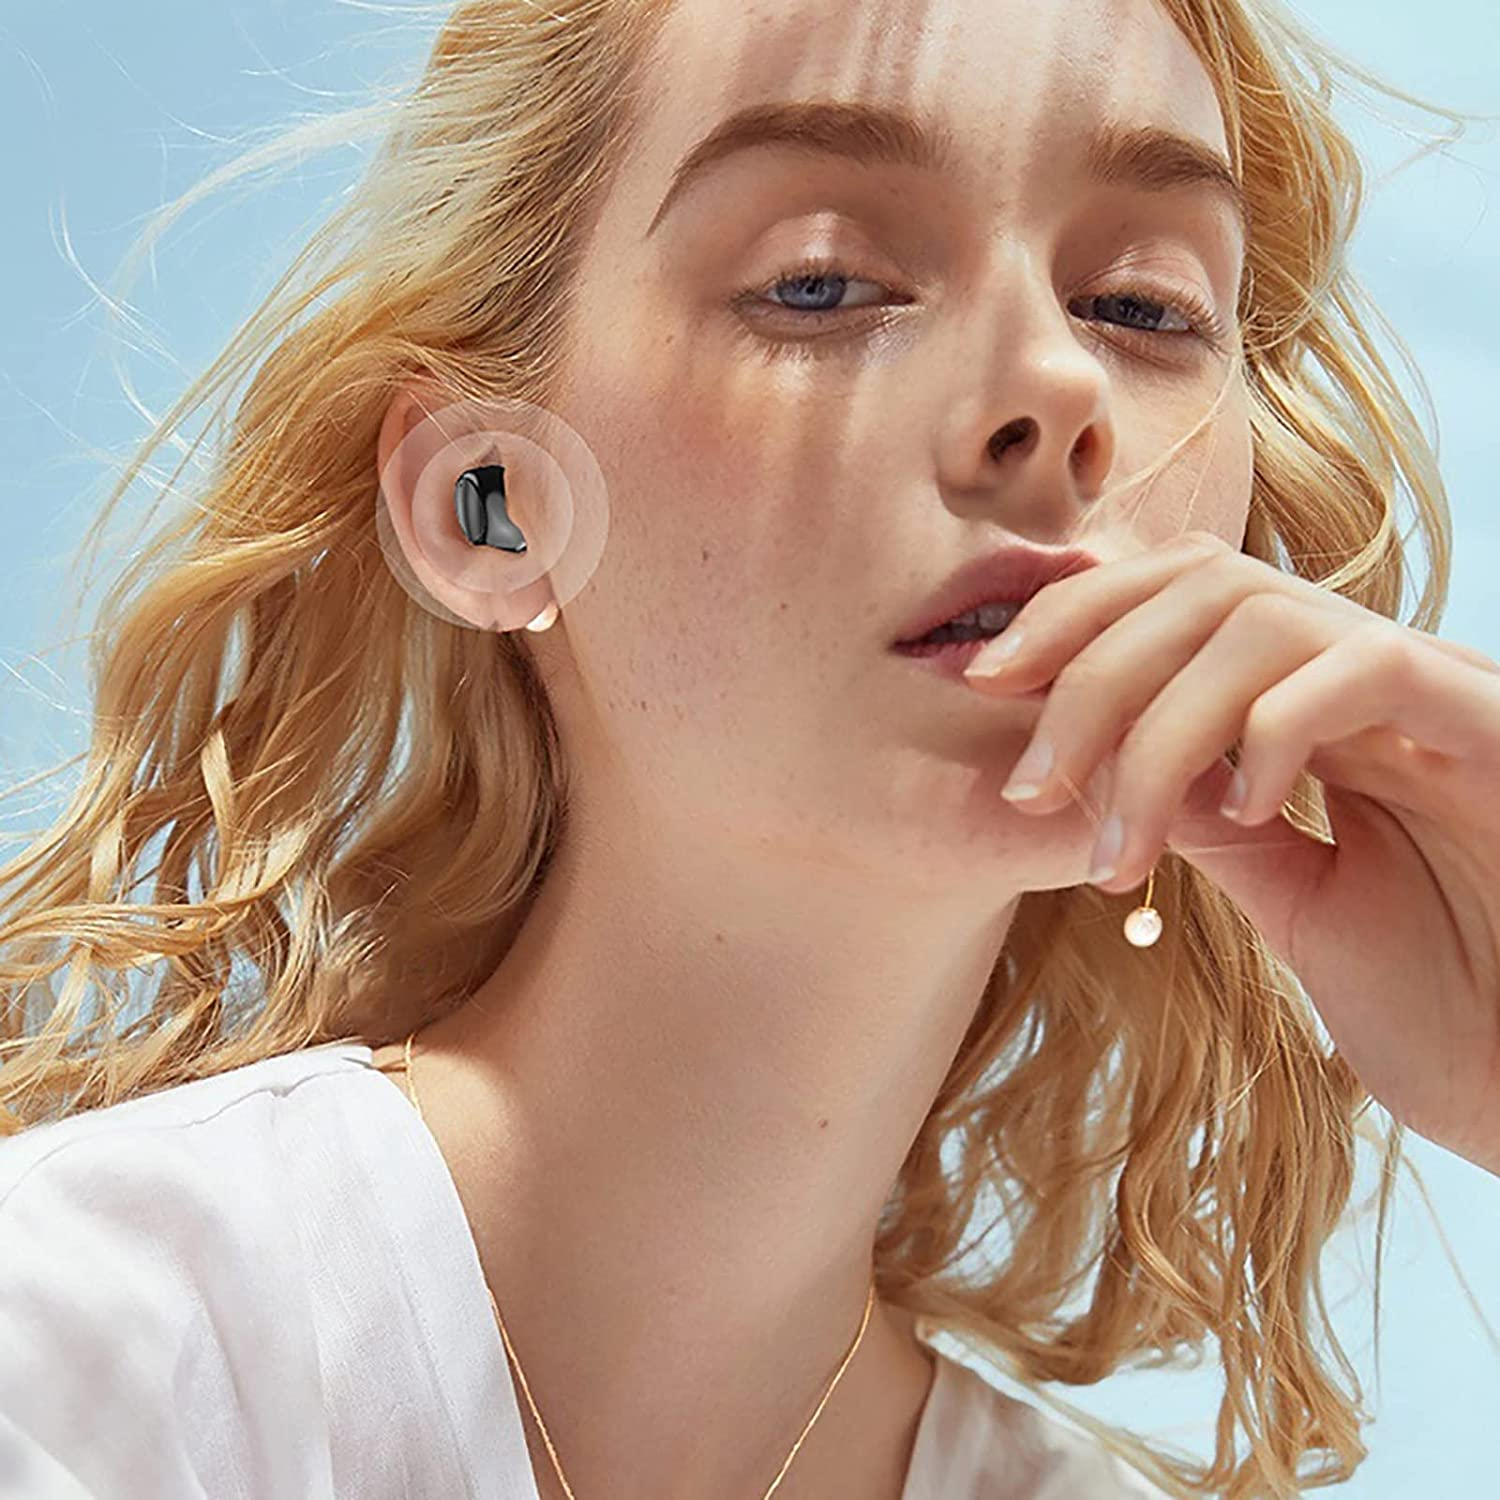 1pc Wireless Earbuds, Bluetooth 5.0 Headphones Mini Bluetooth Earbuds with HD Mic, Wireless Earphones in Ear with USB C Charging Case, IP7 Waterproof, Deep Bass, 30H Playtime Headset for Sports